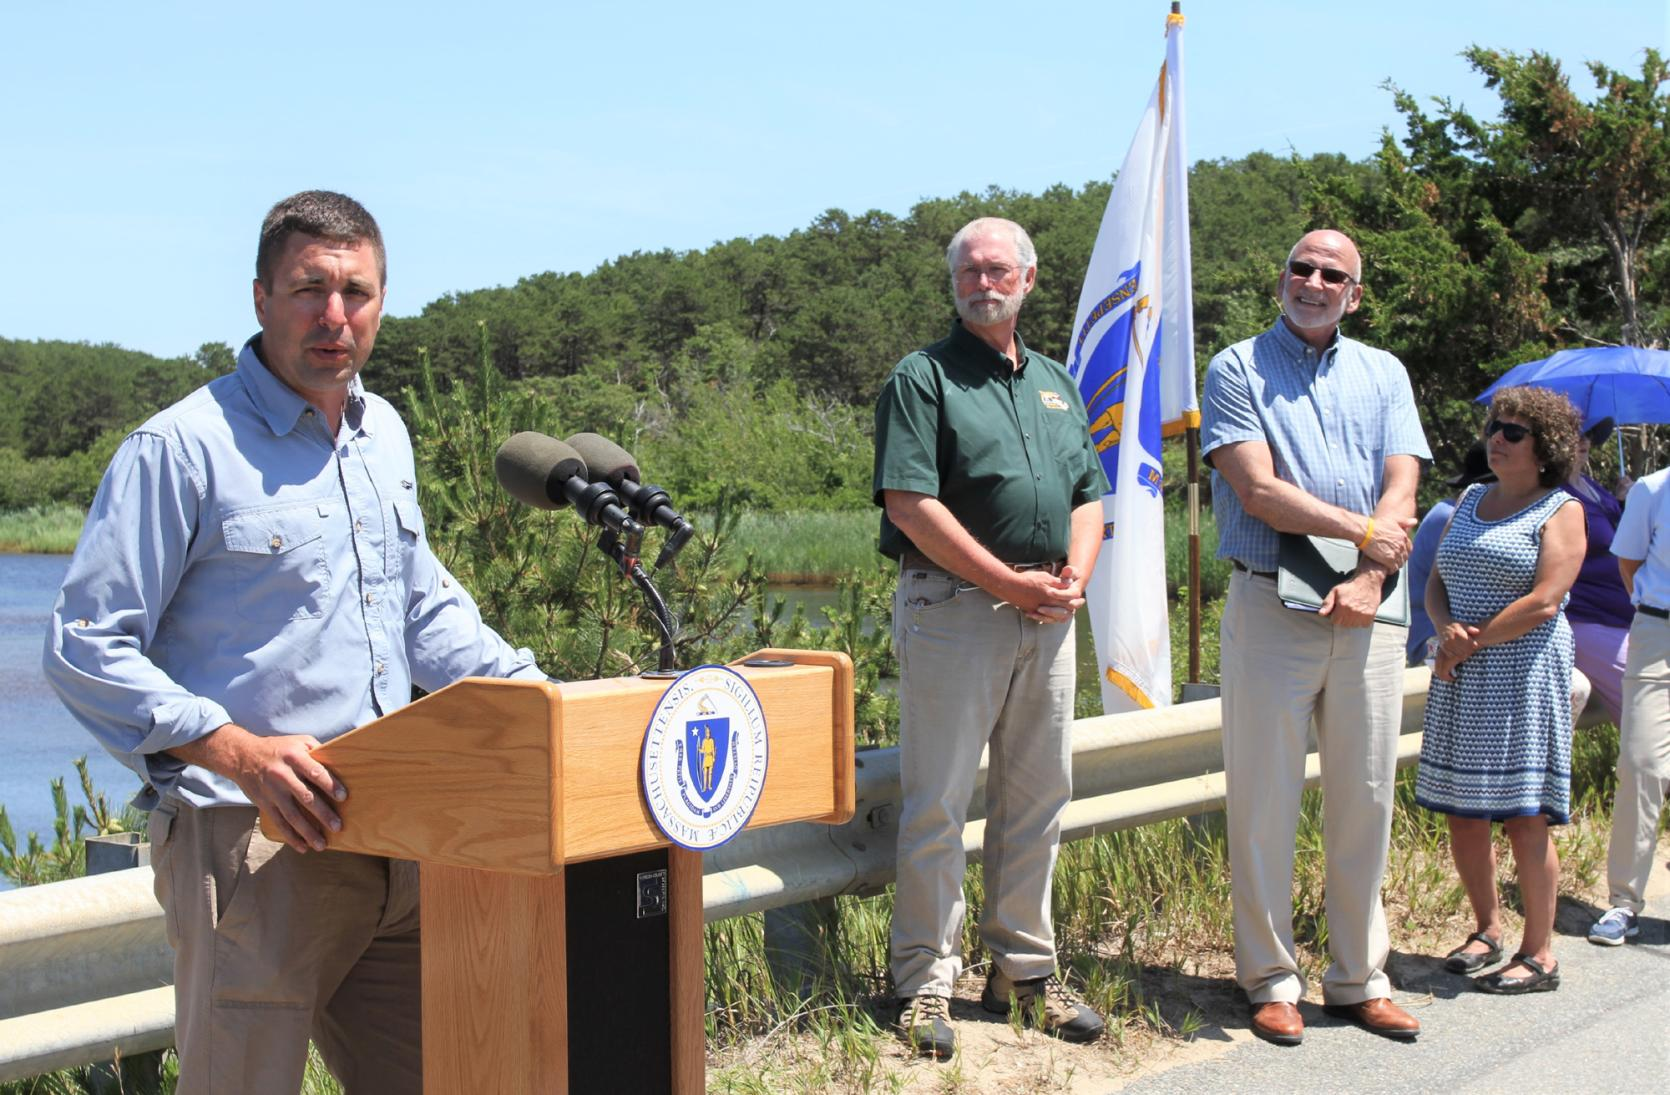 State, federal and local partners gather at the Herring River Estuary Restoration site